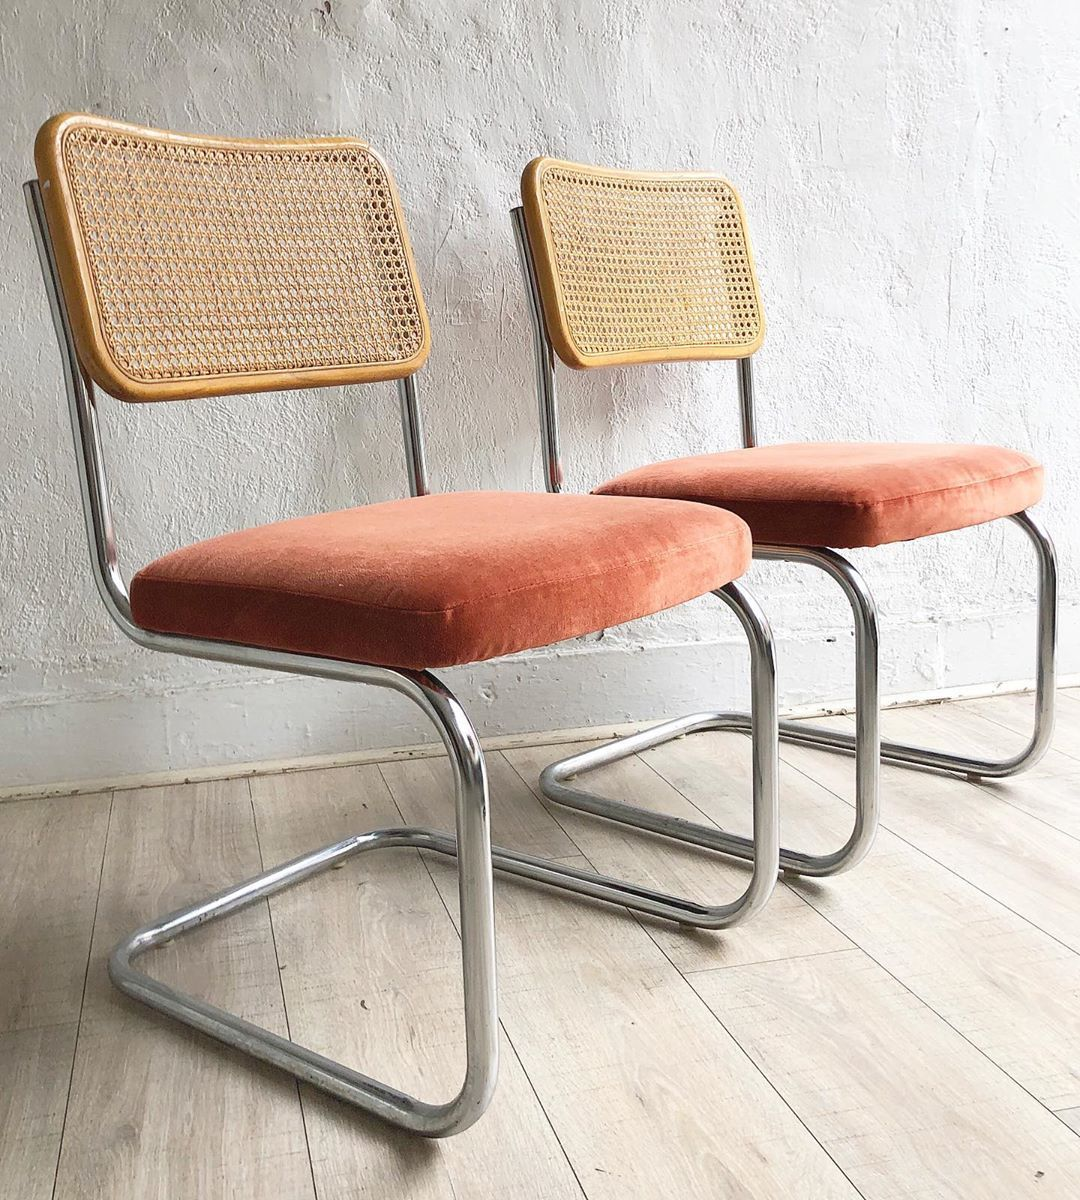 Adaptations Ny On Instagram Rust Cantilever Chairs Home Room Design Cantilever Chair Interior Furniture